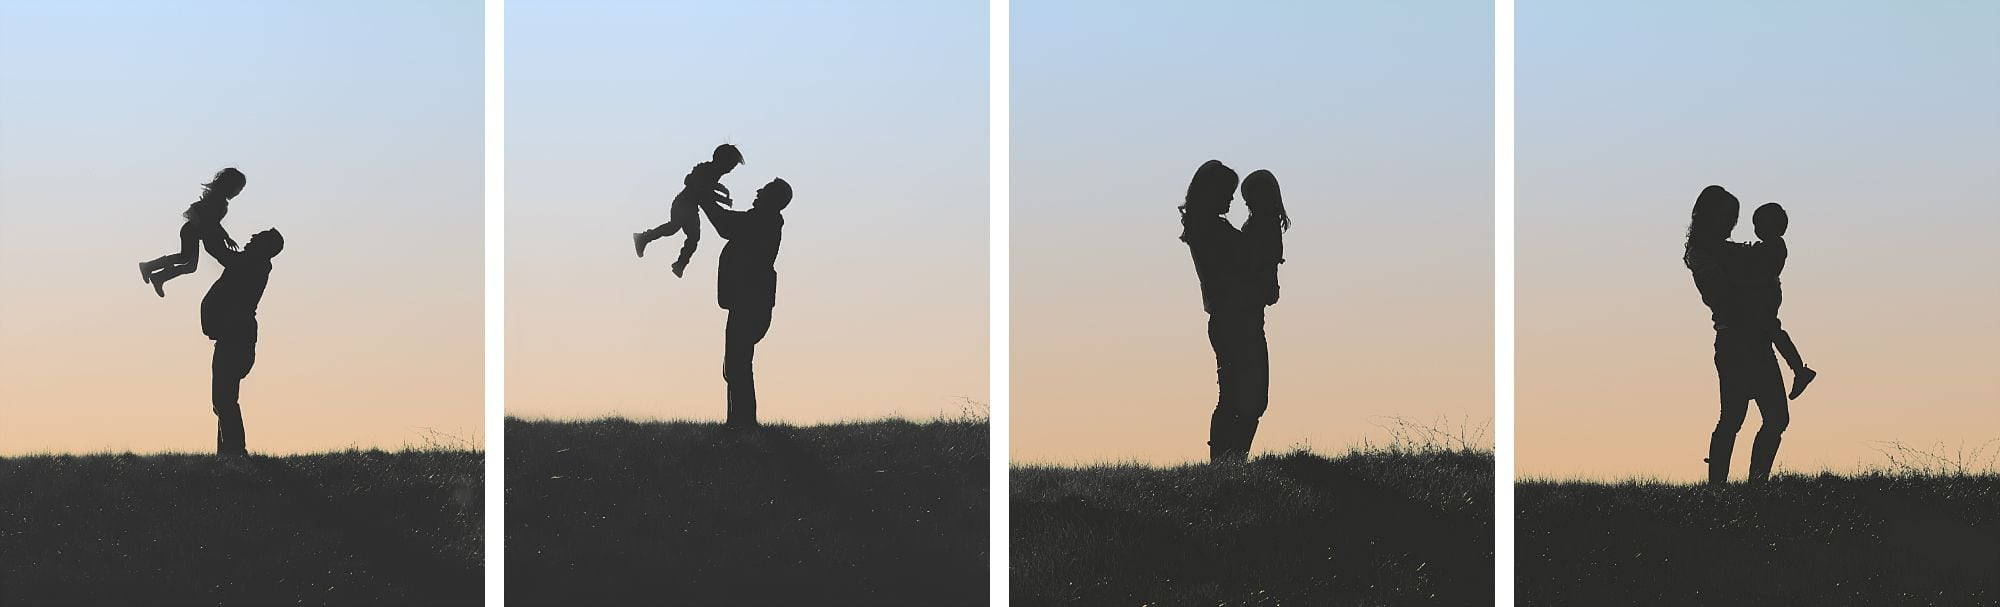 Silhouette photos of mom and dad holding son and daughter at sunset on a hill in Massachusetts